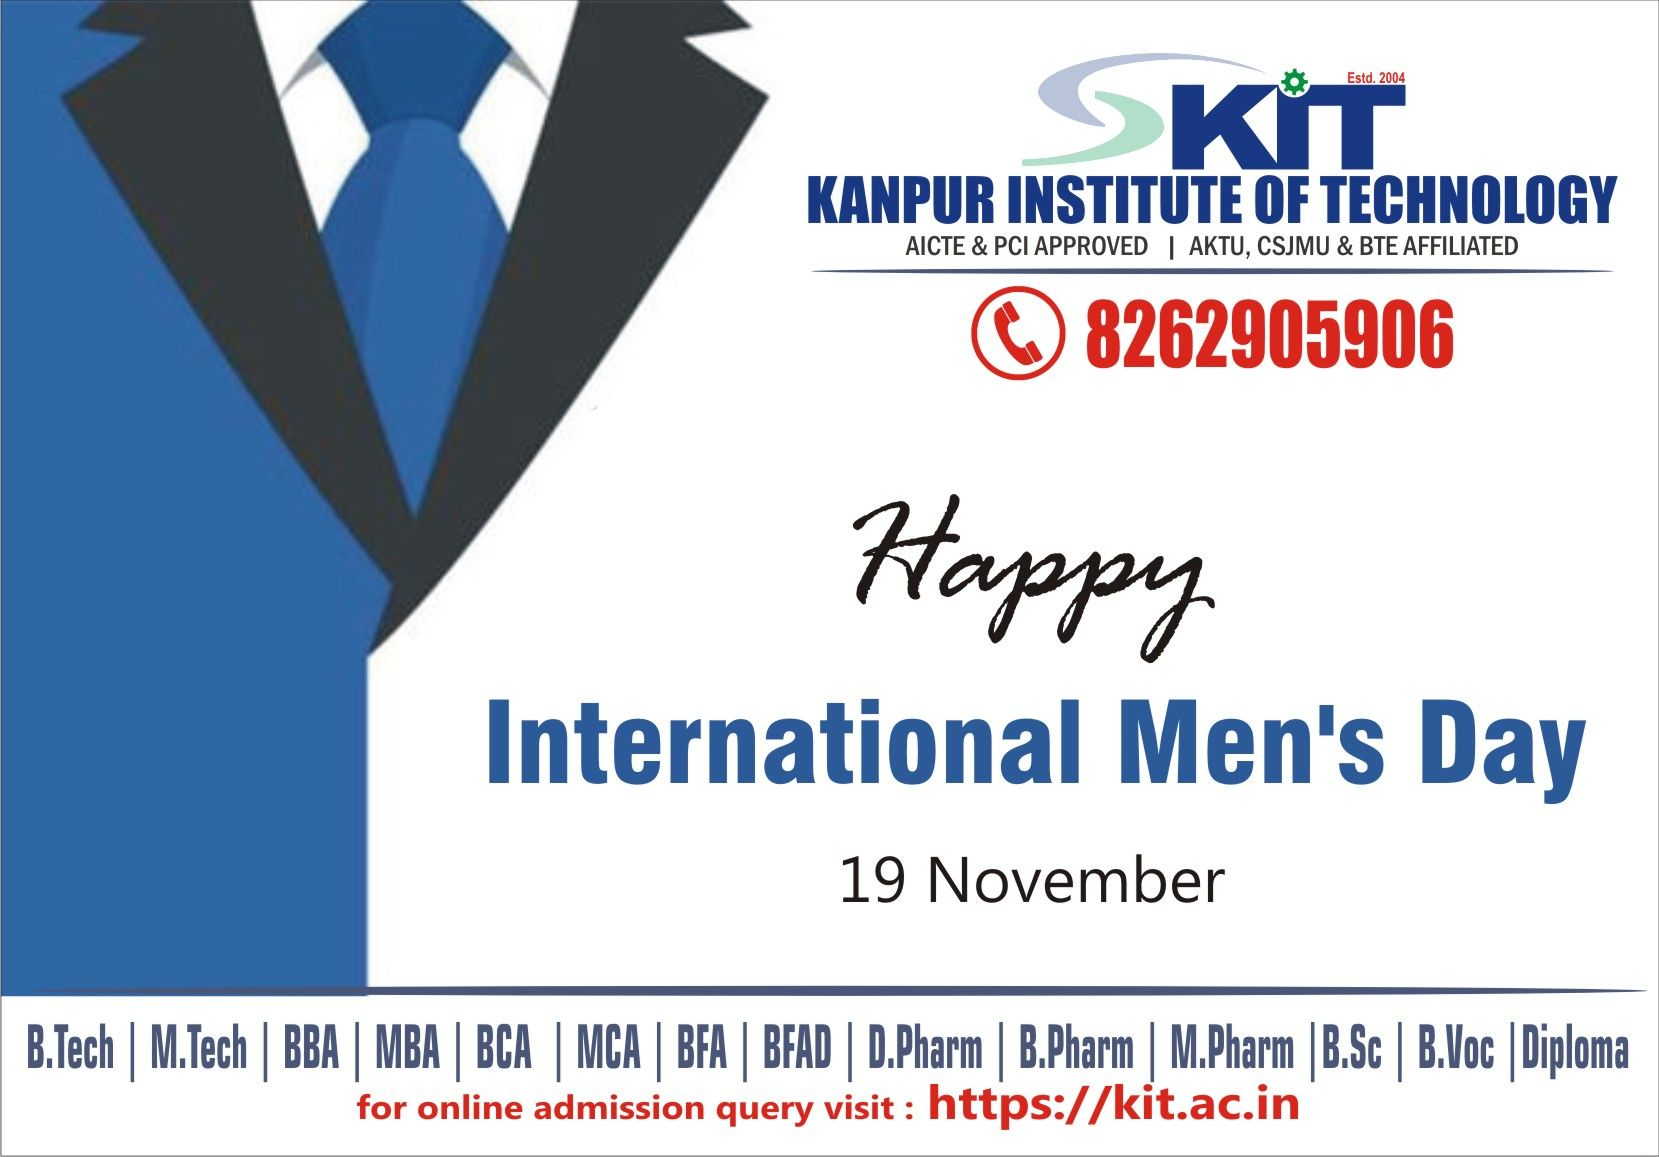 The International Men S Day Is Celebrated On November 19 Every Year Across The Globe The Day Is International Men S Day Men S Day Mens Health